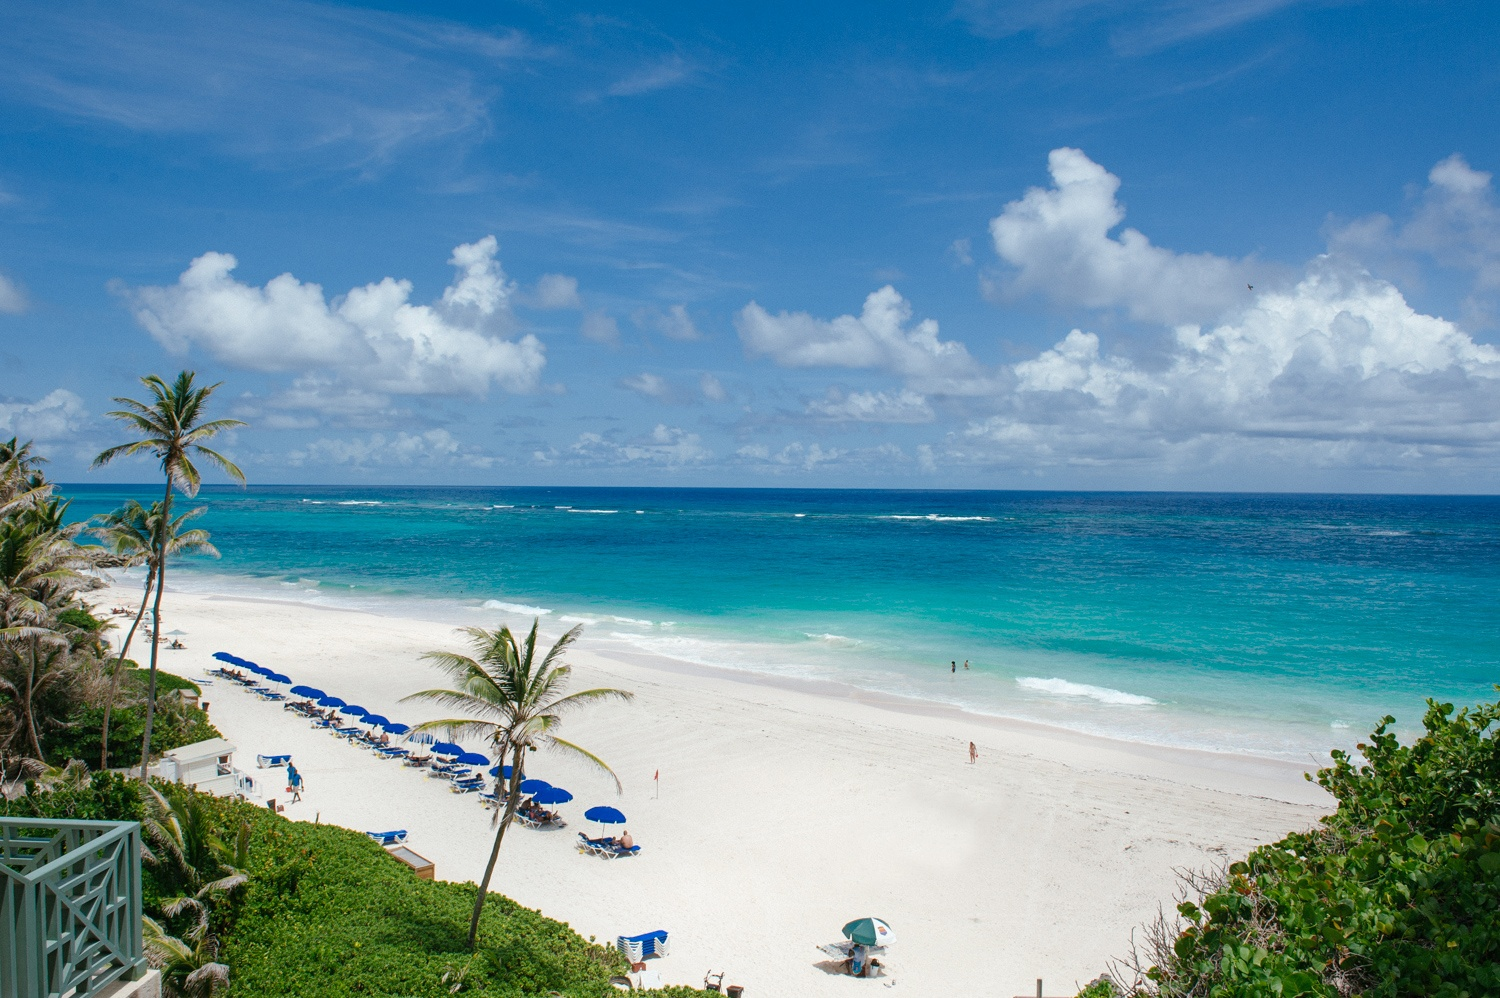 Top Traveler Questions About Barbados